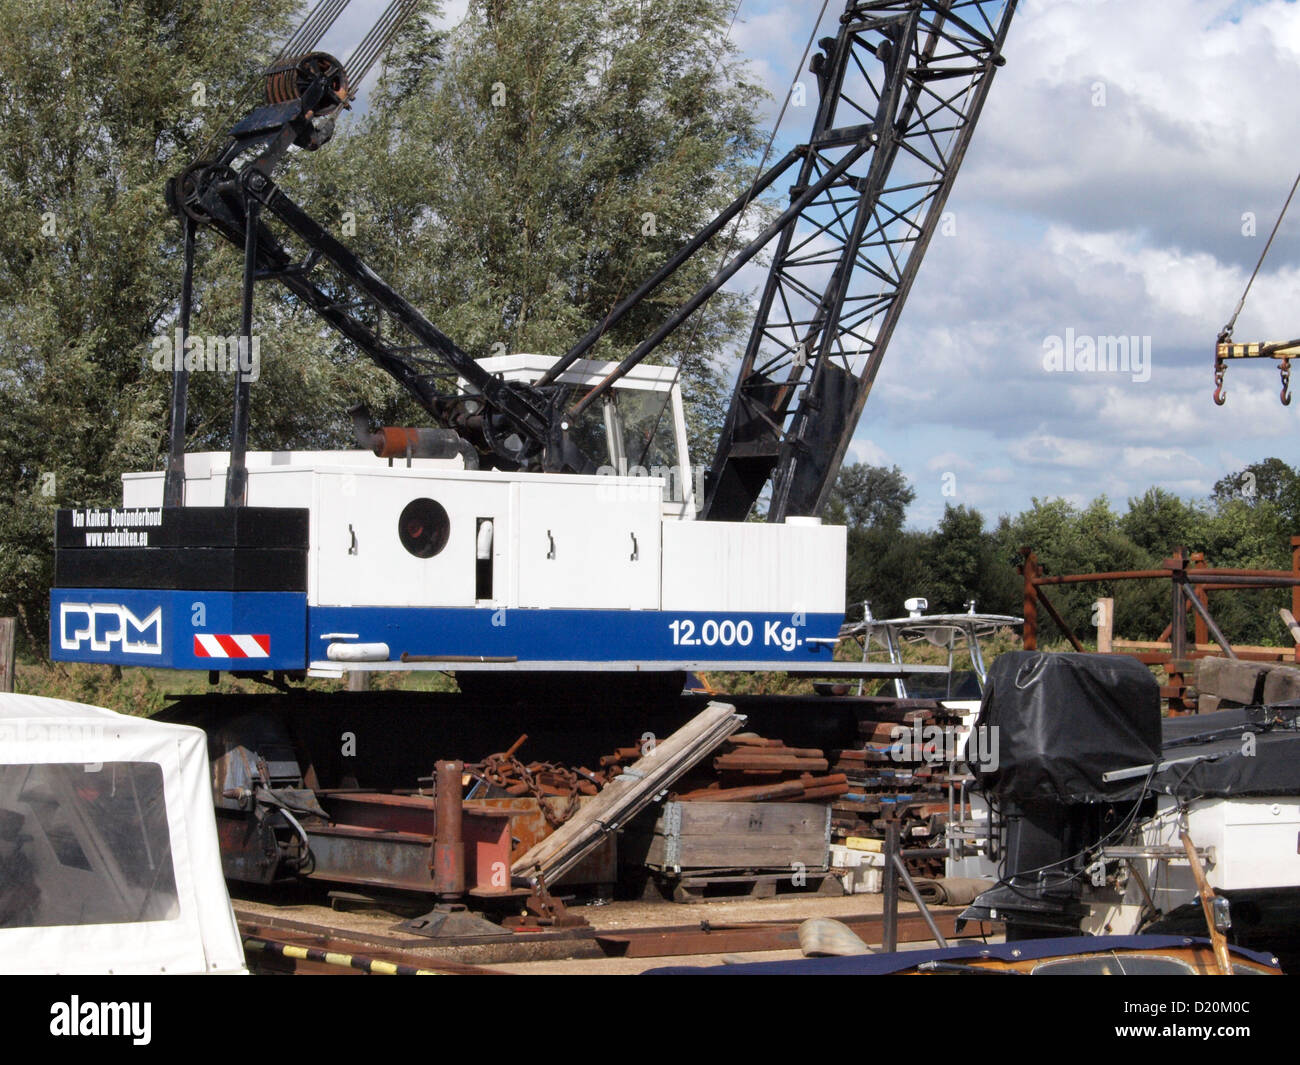 PPM crane removed from its tracks Stock Photo